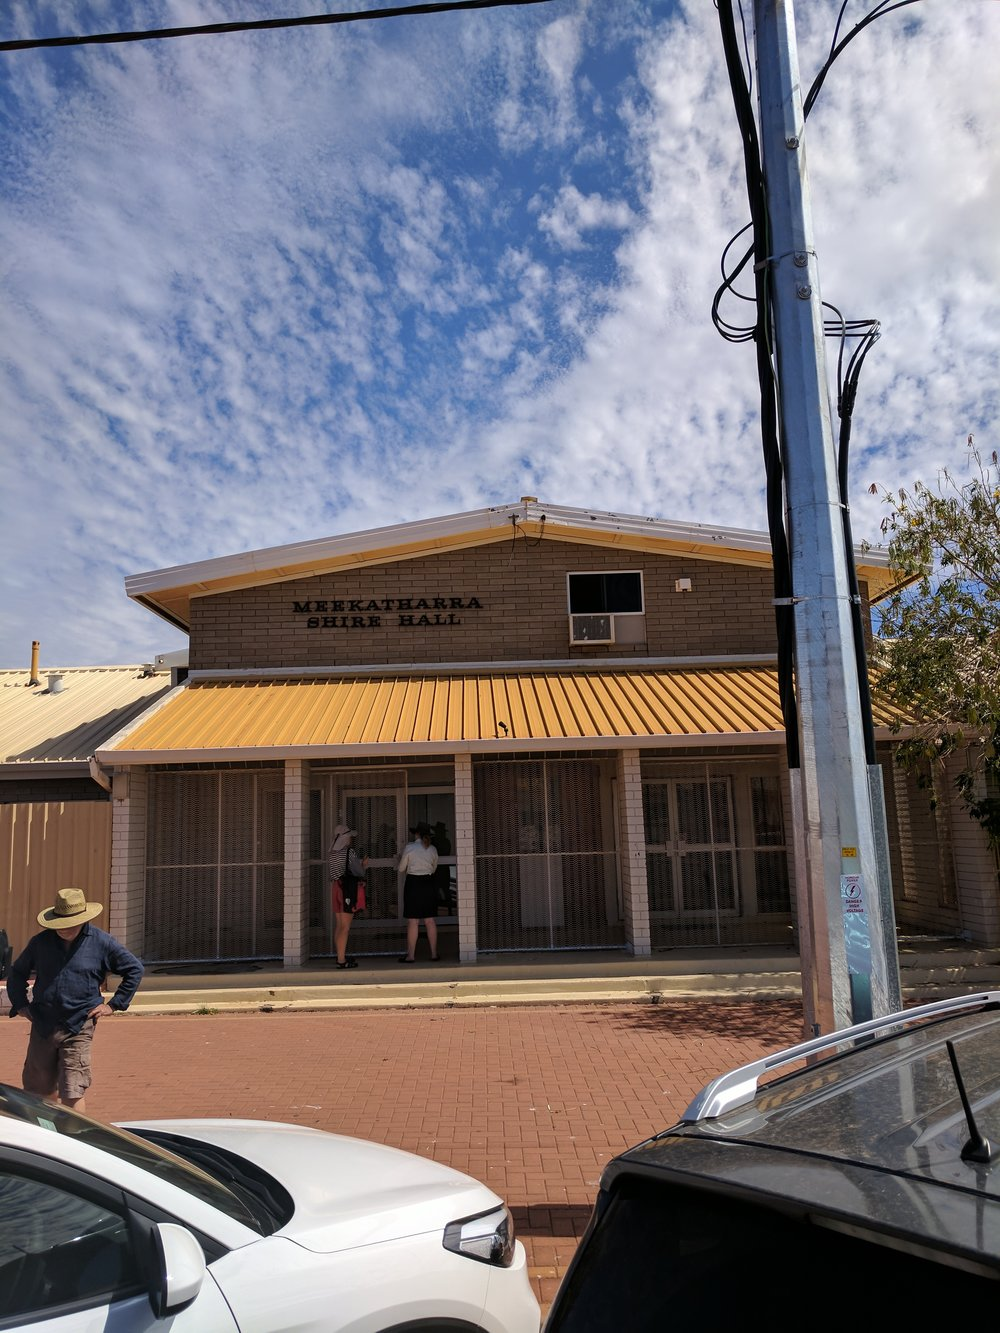 The Meekatharra Shire Hall, where balls and community gatherings happen